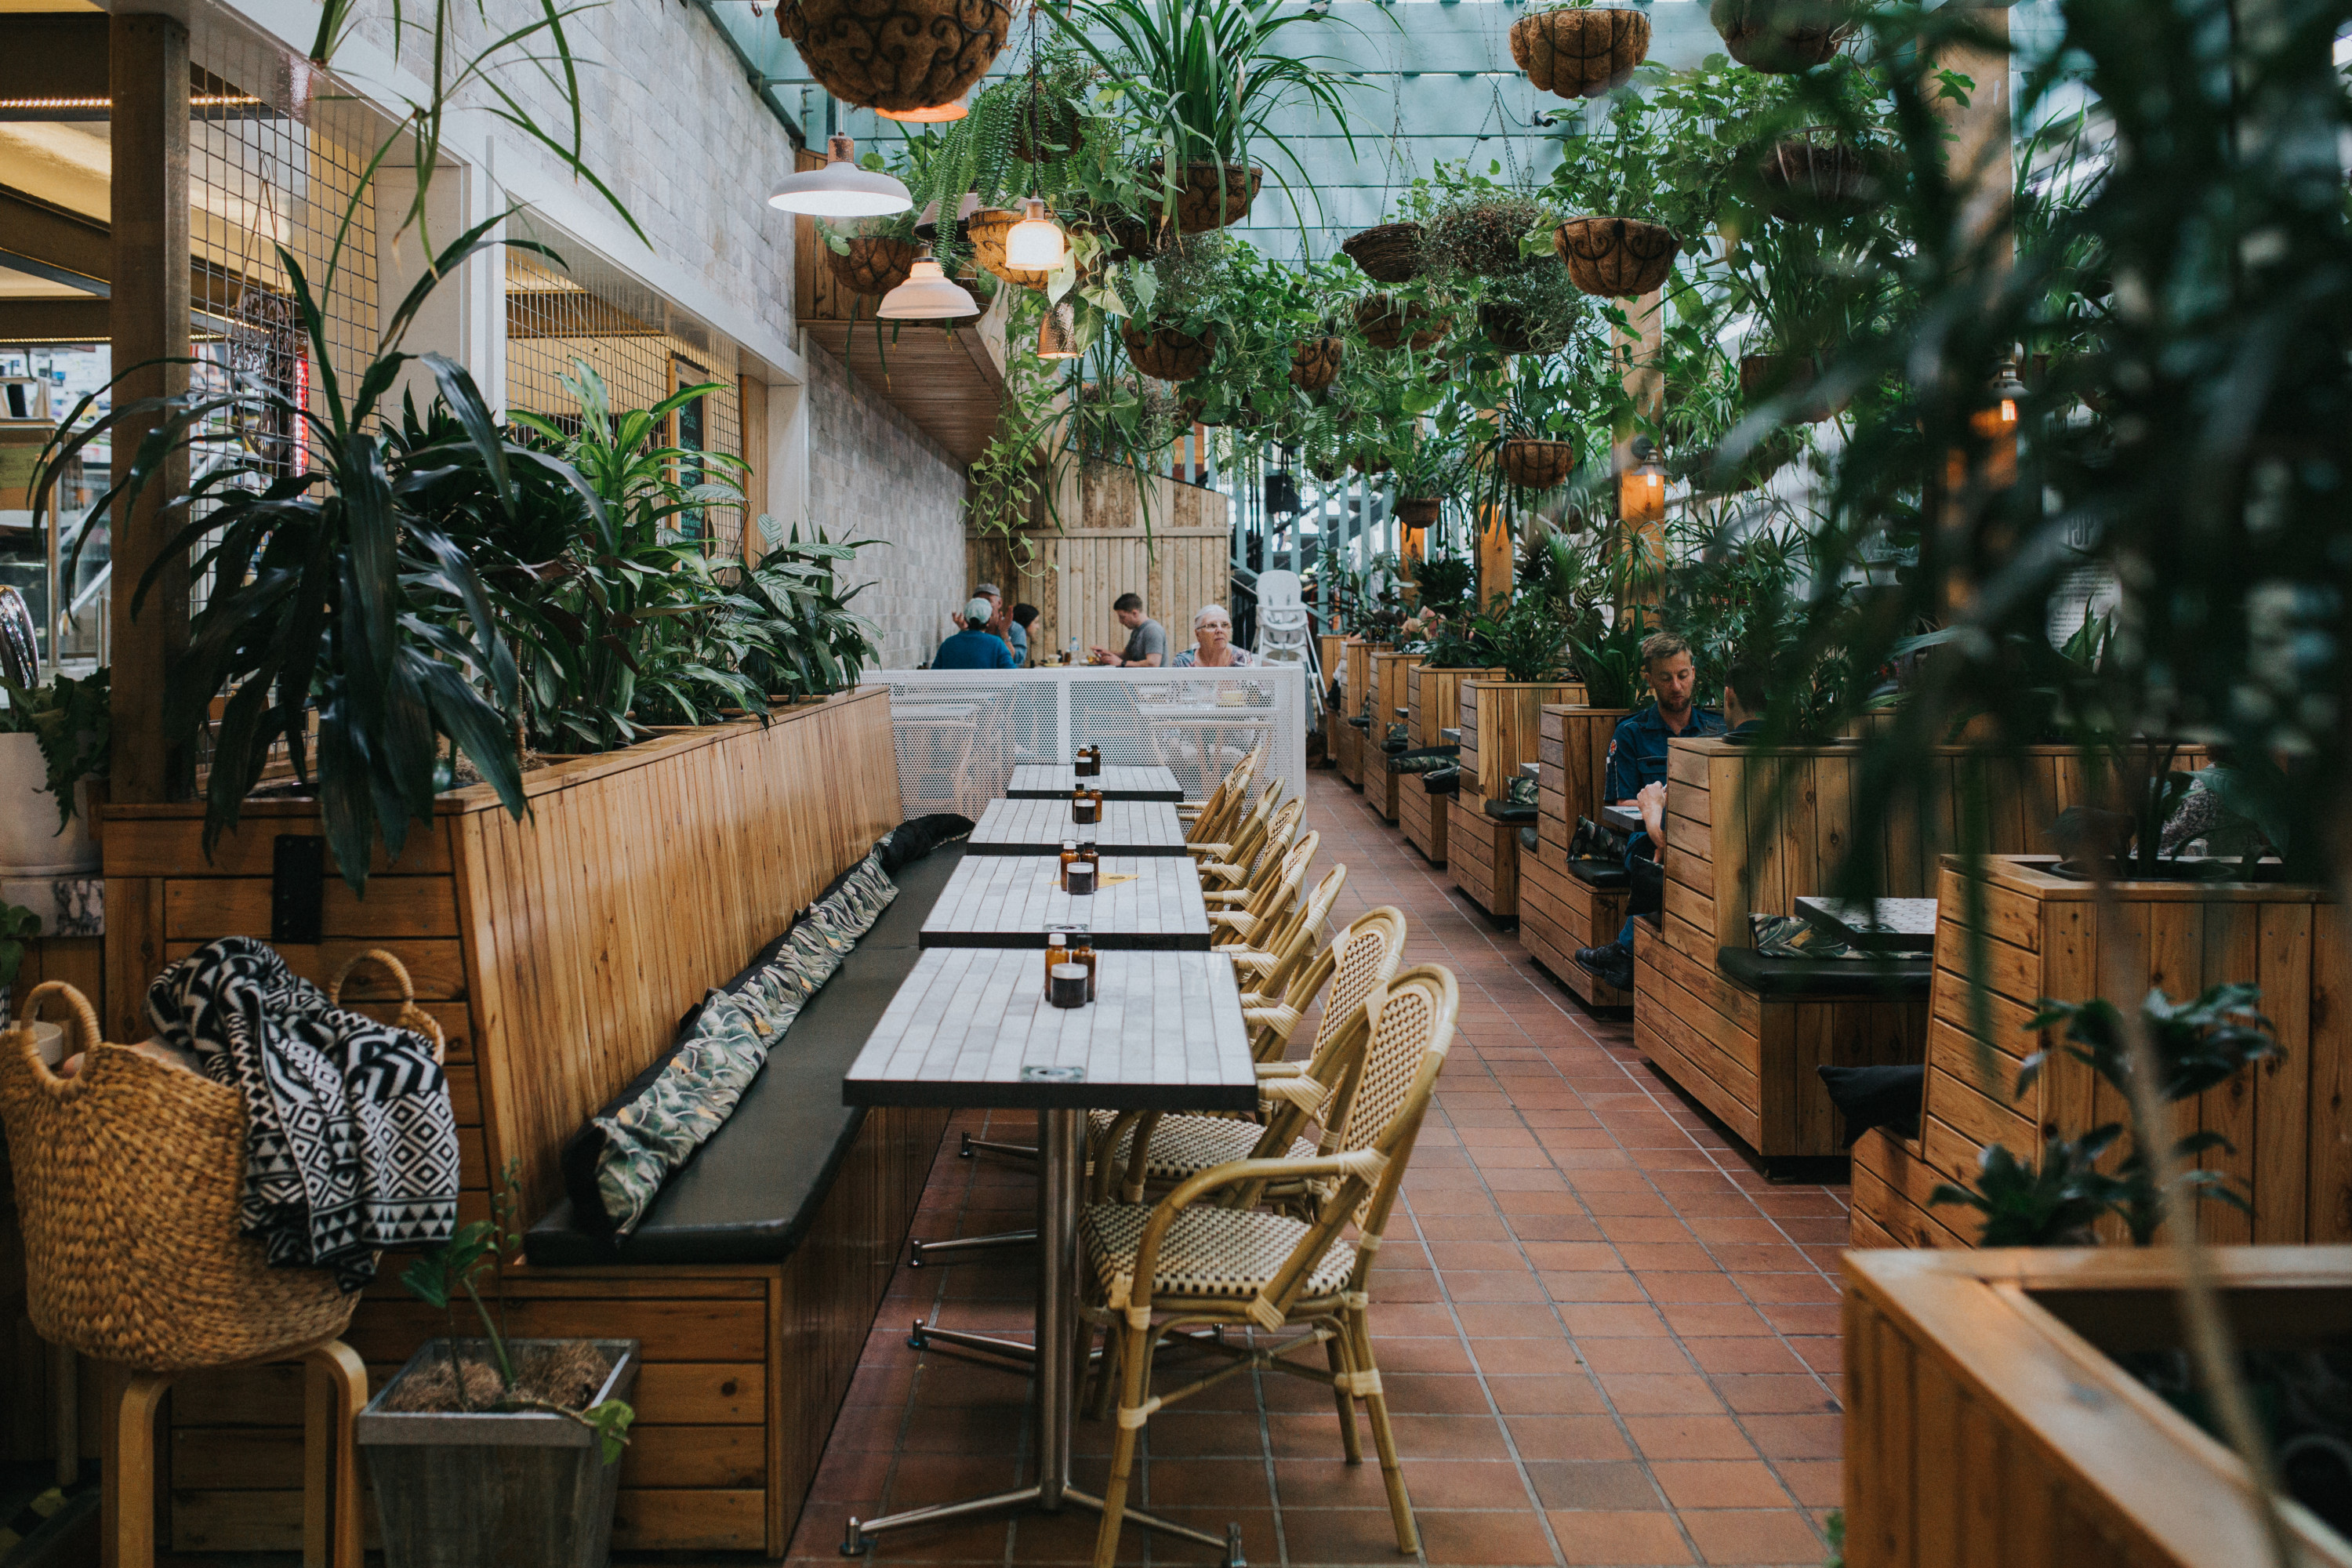 the lush interior of a cafe filled with greenery